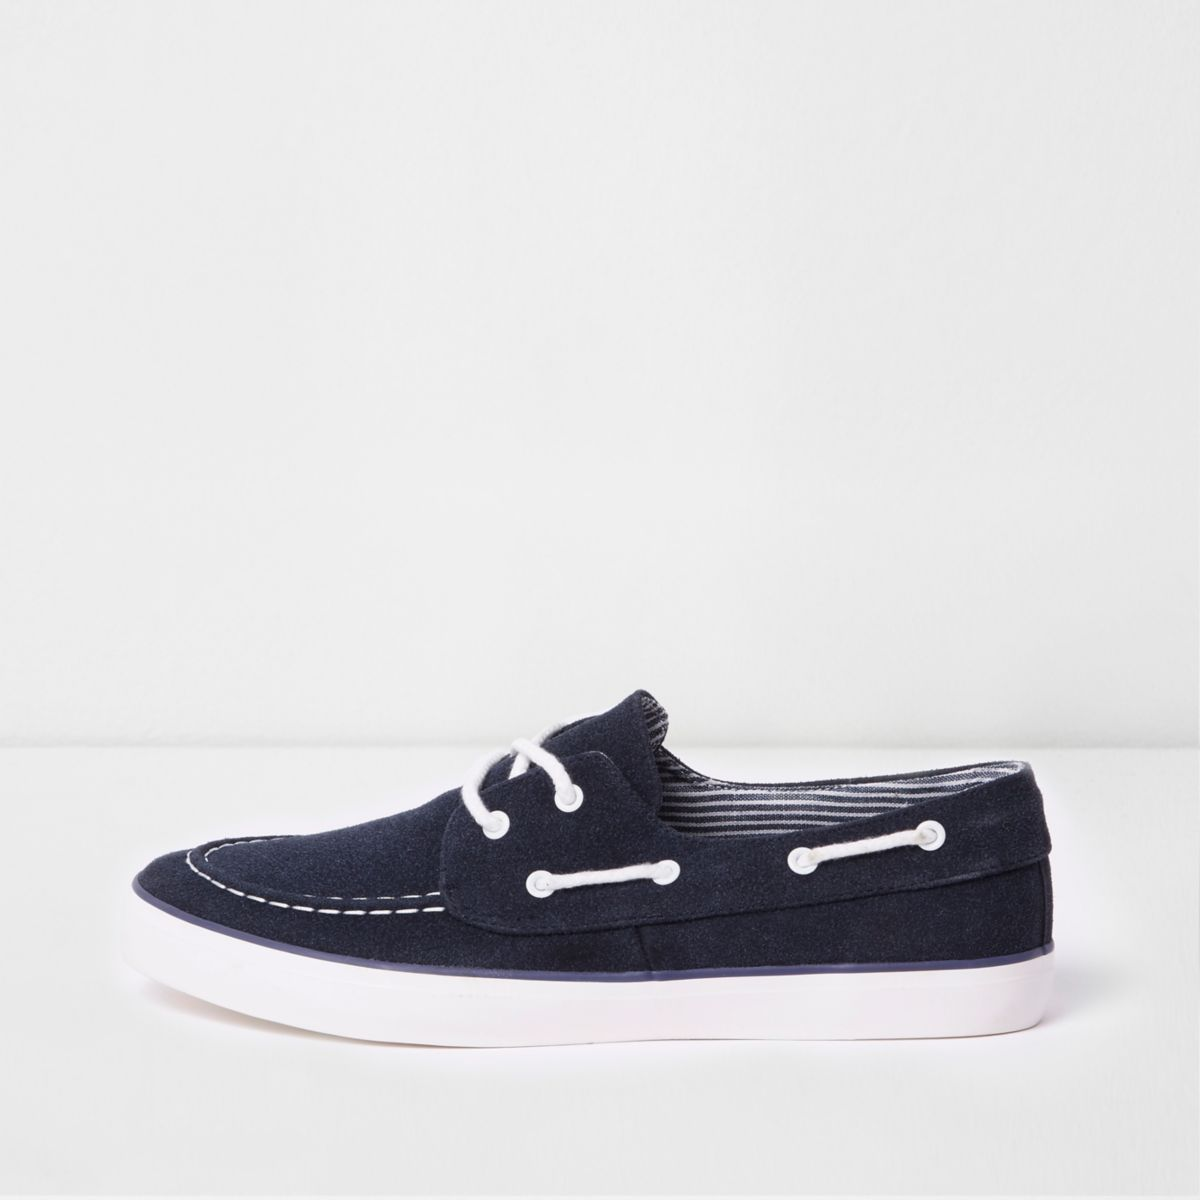 Navy lace-up boat shoes